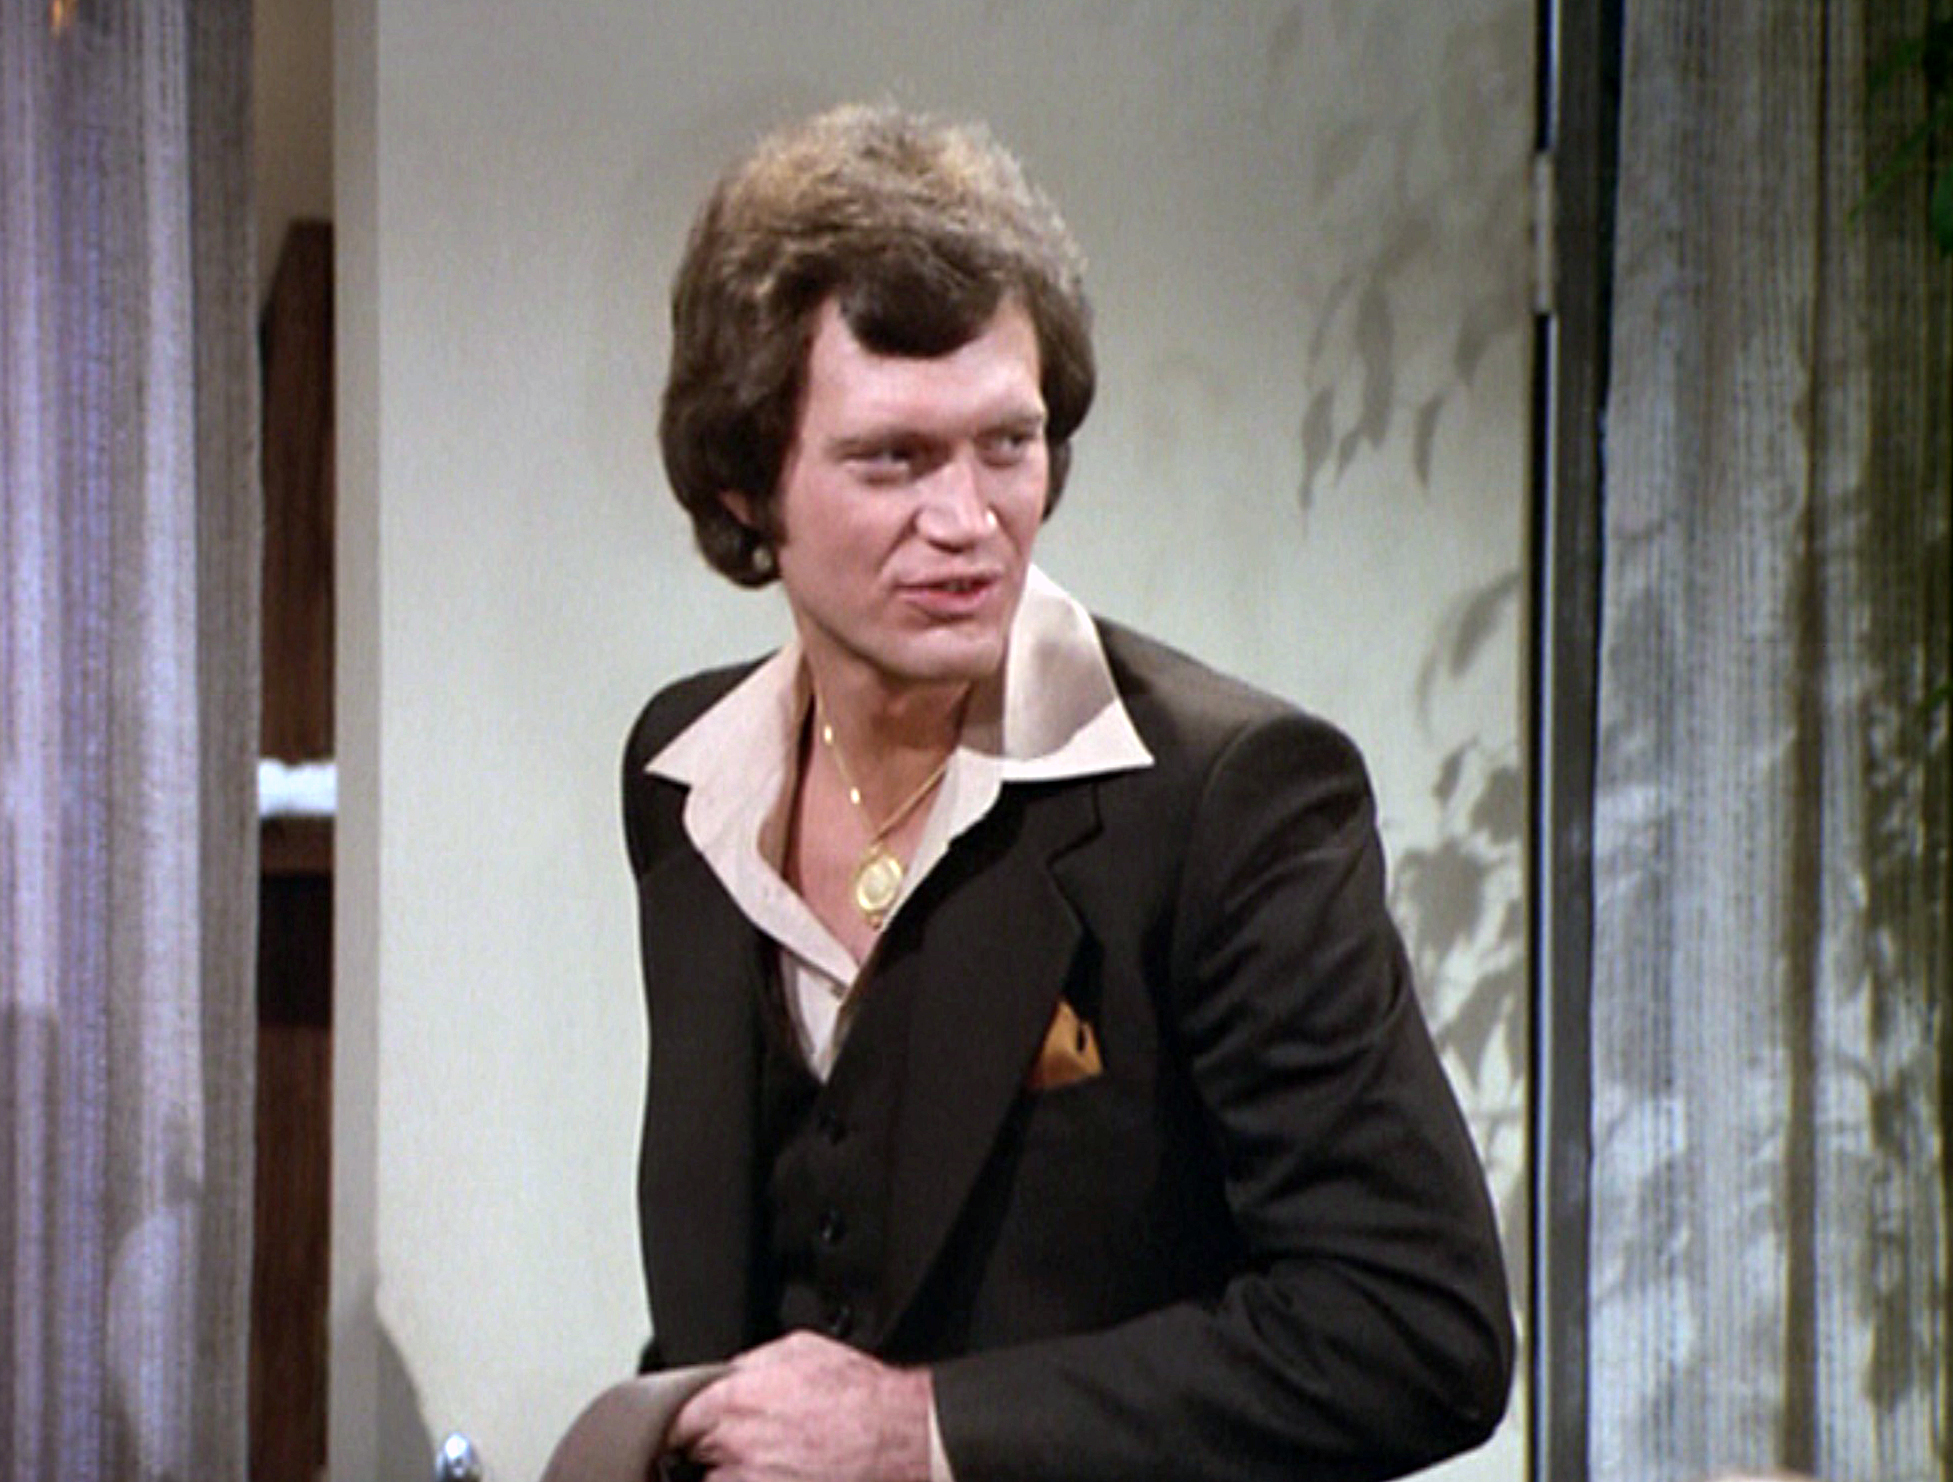 One of David Letterman's earliest roles before he made it as a television host was as a guest star on Mork & Mindy.